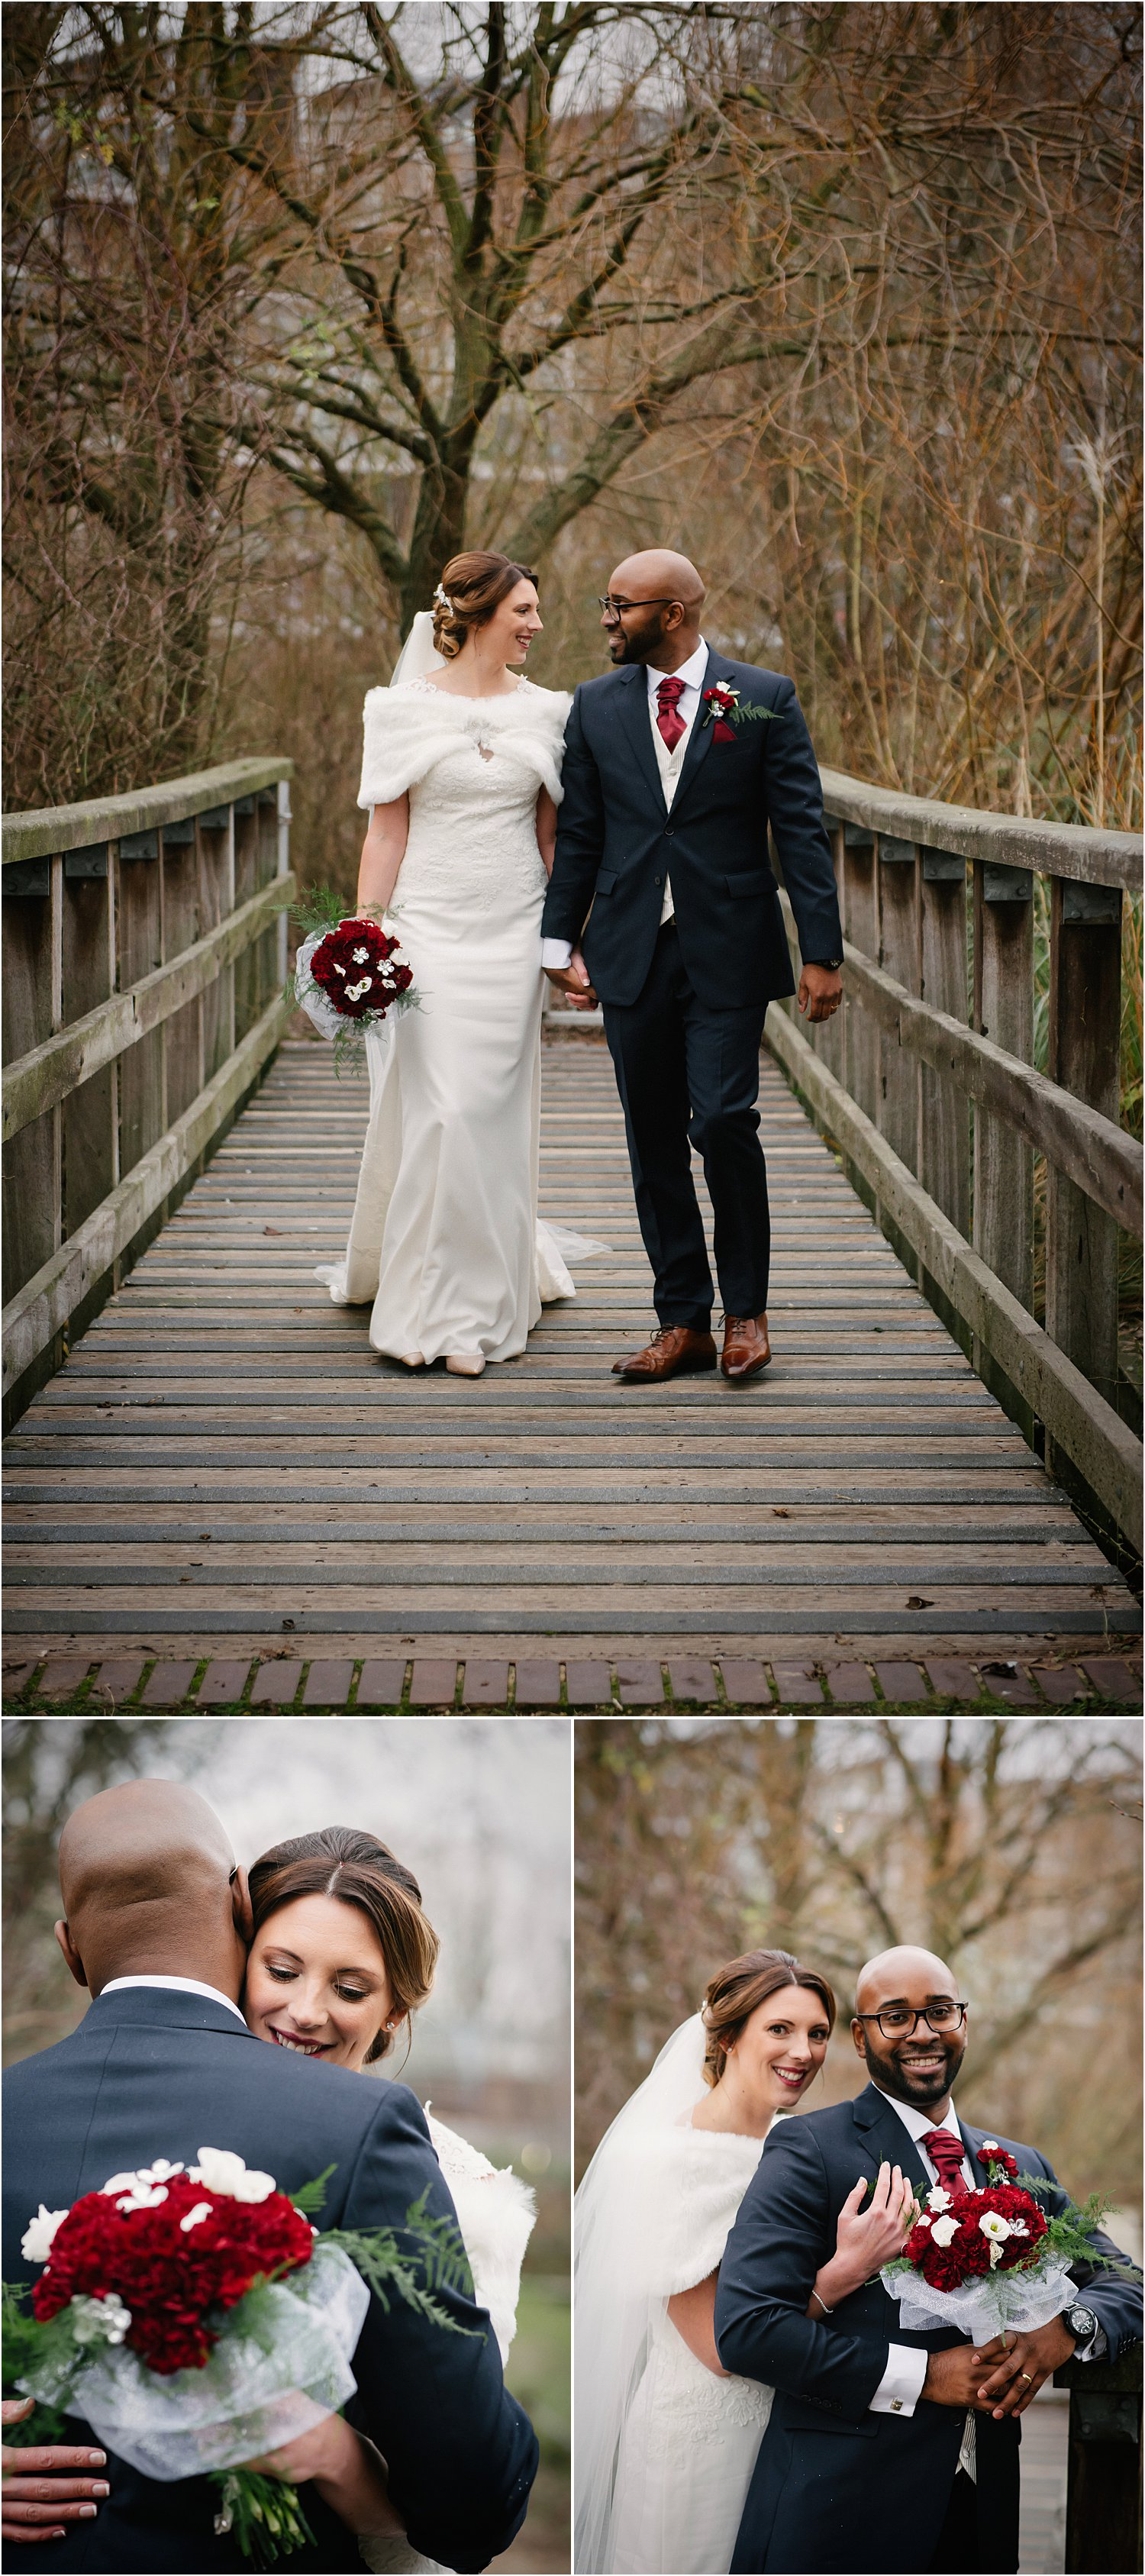 ecology-pavilion-london-winter-wedding-rachel-daniel-lily-sawyer-photo